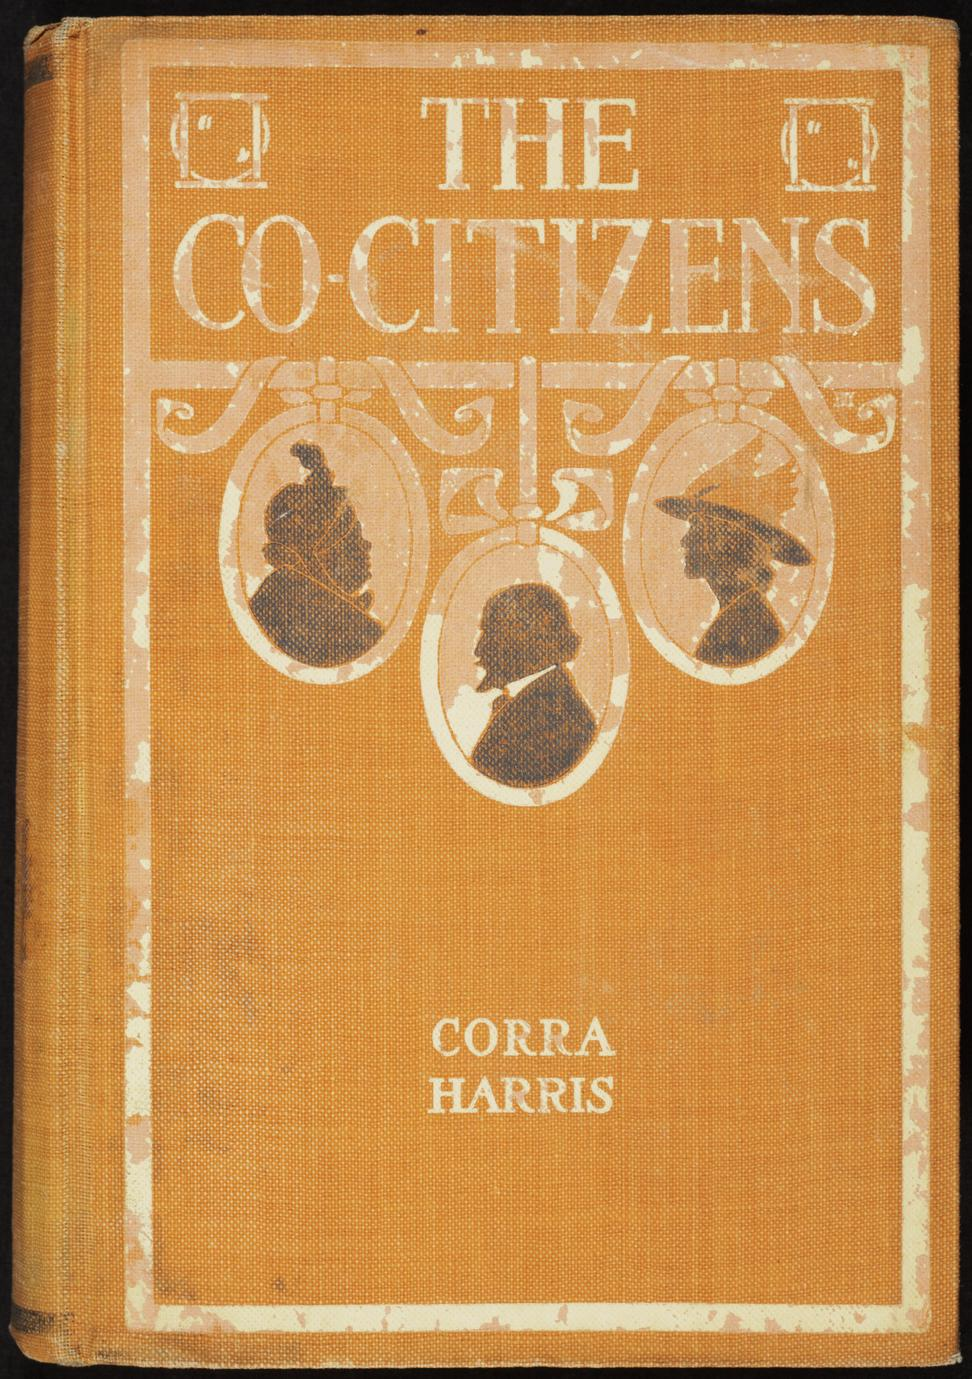 The co-citizens (1 of 3)